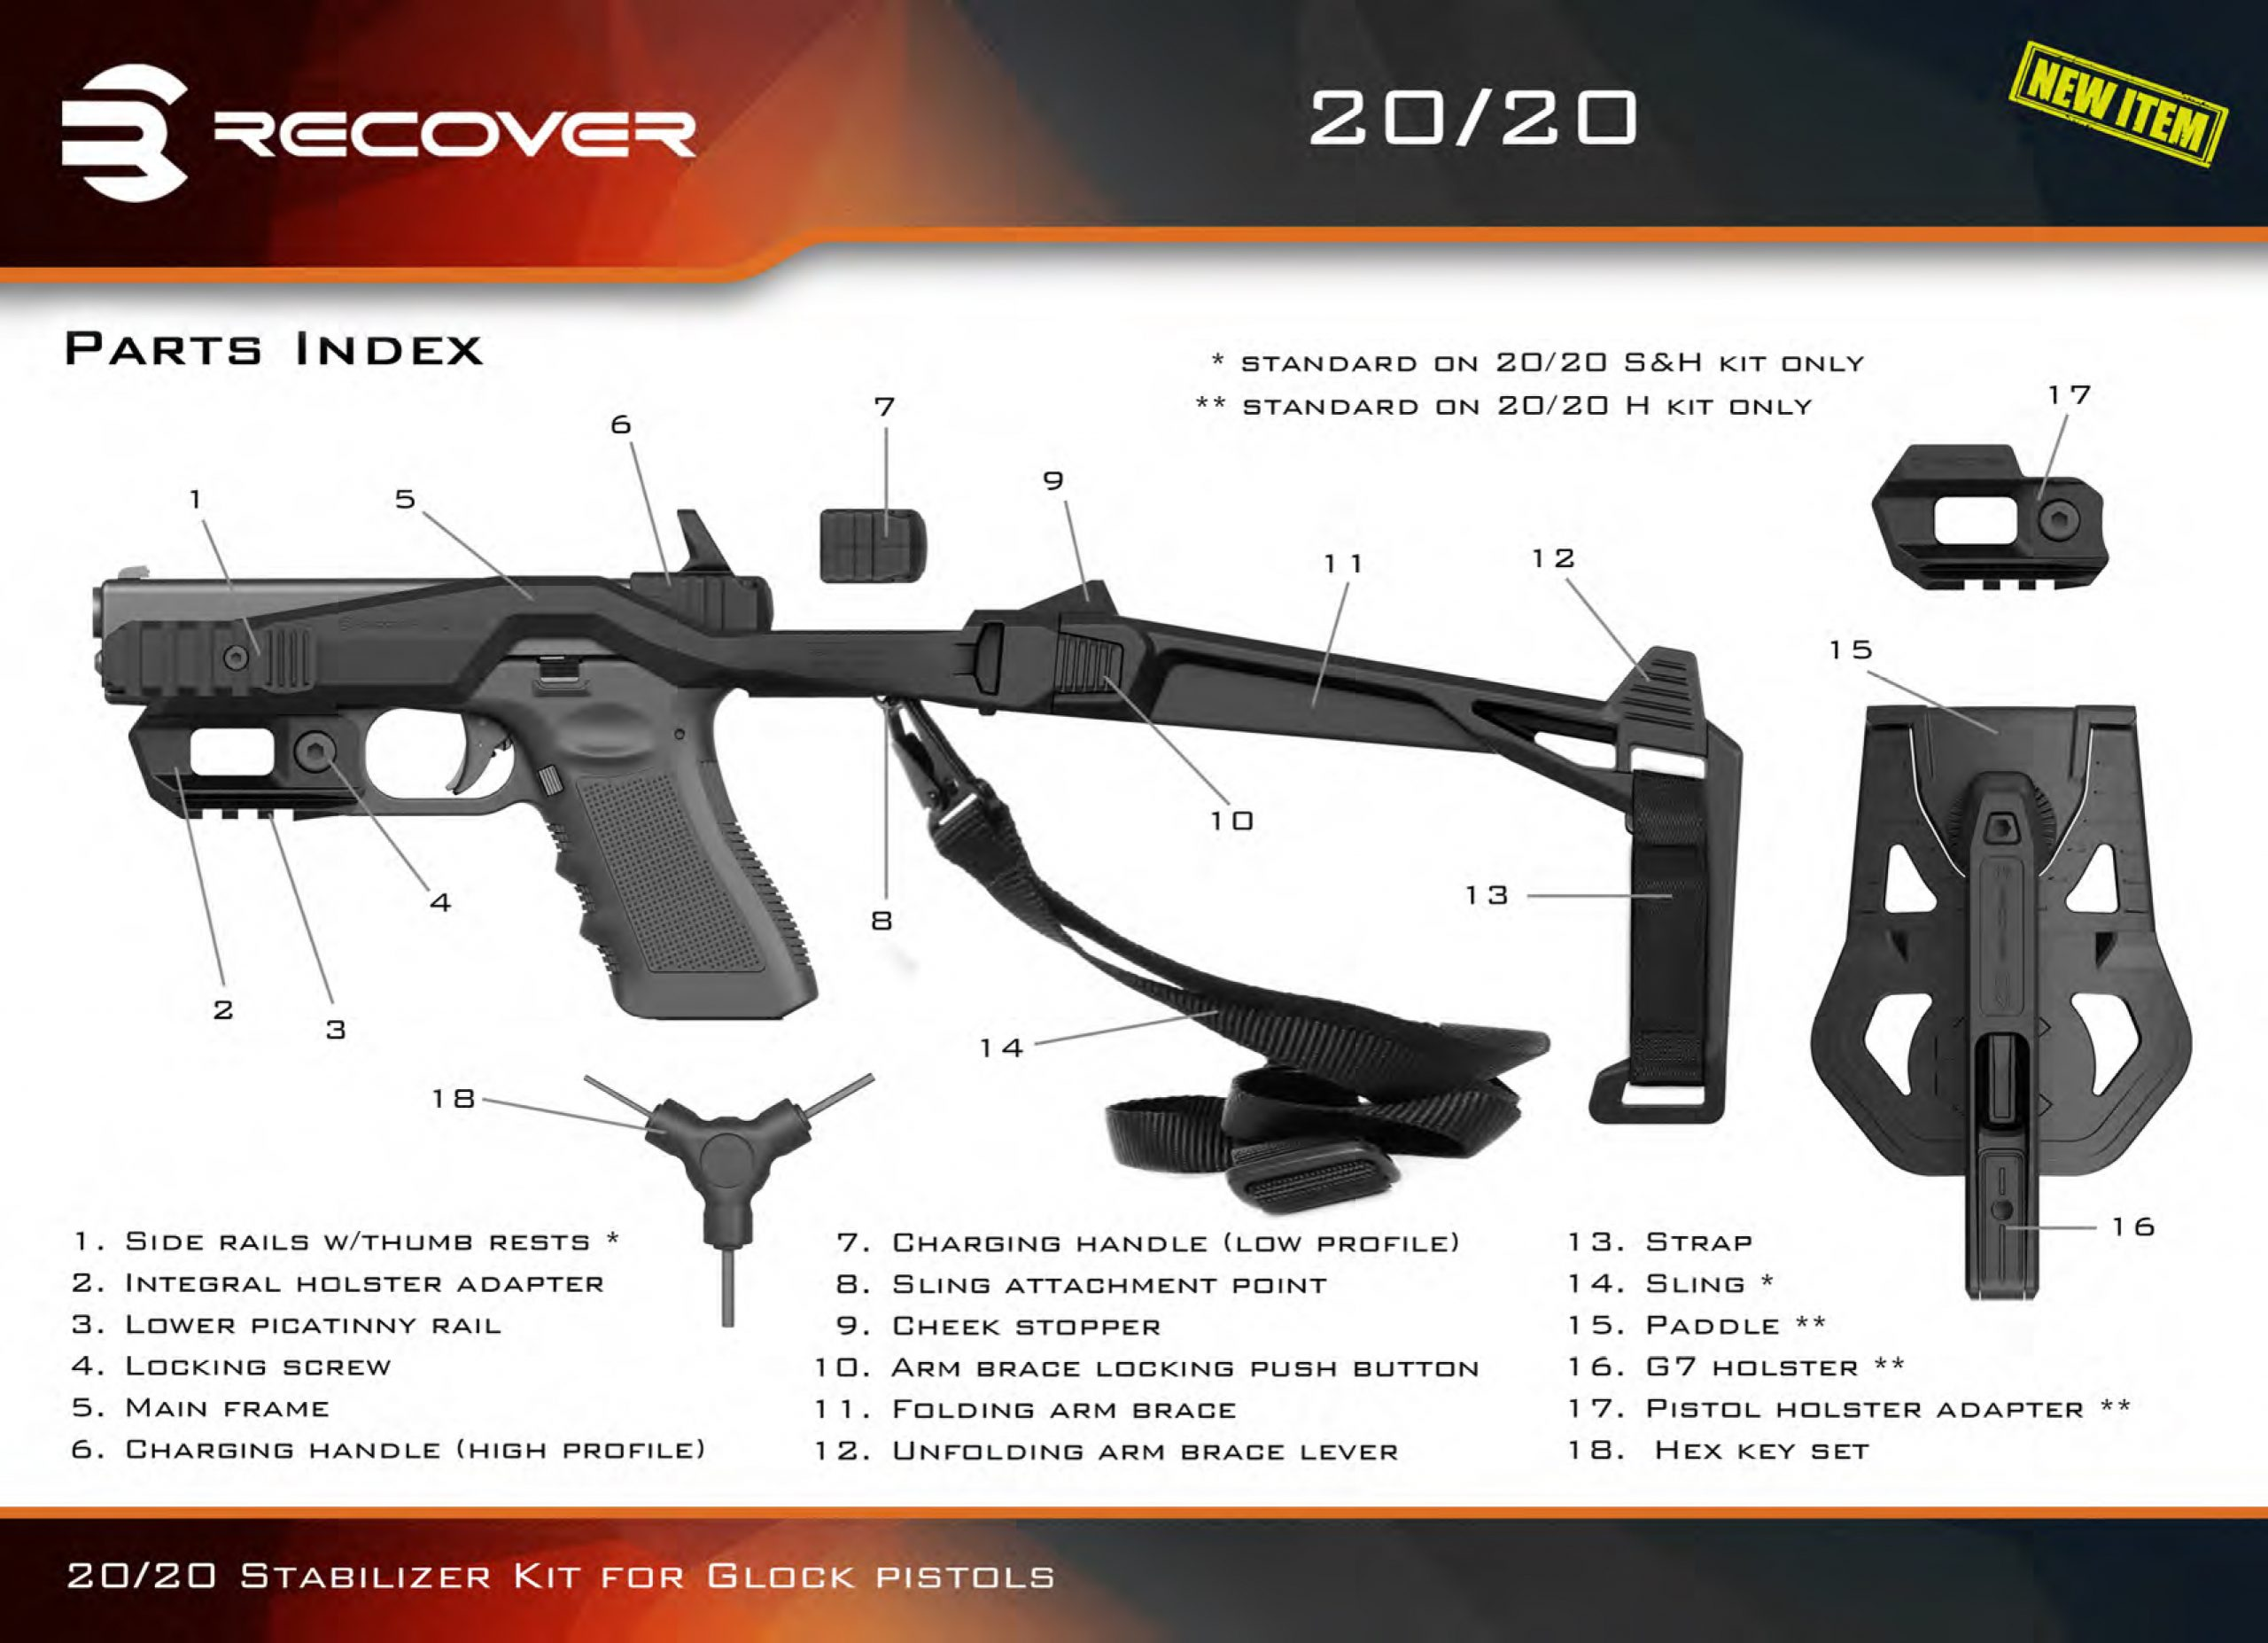 The Recover 20/20 Stabilizer Kit